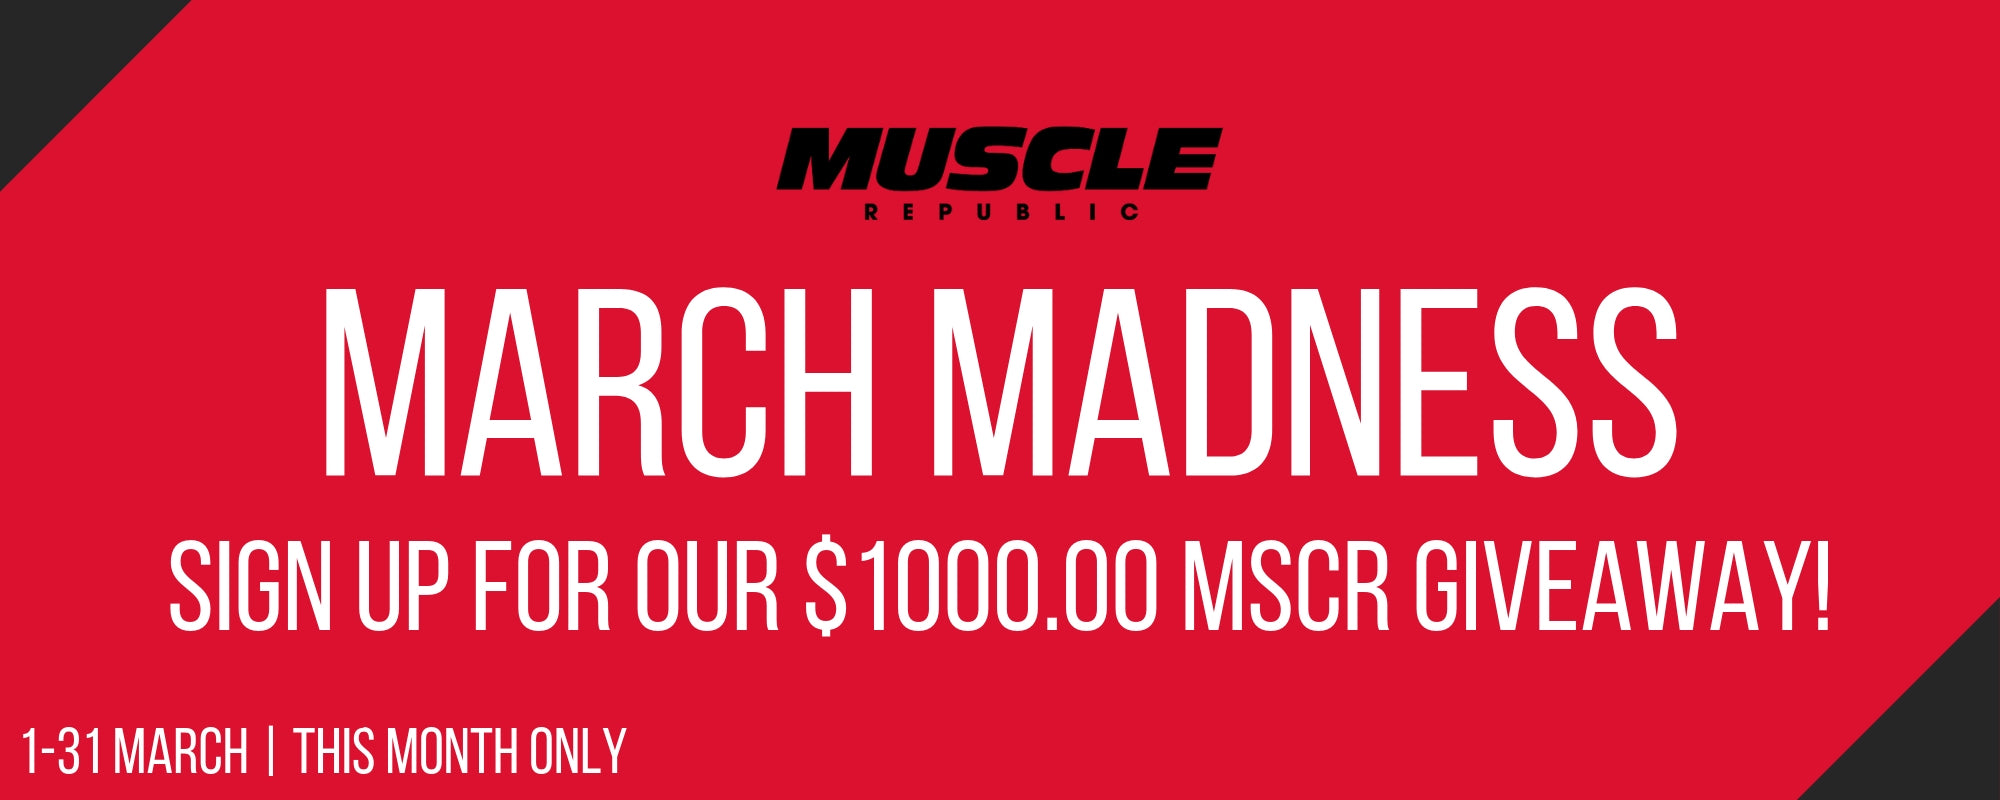 March Madness Sign Up!